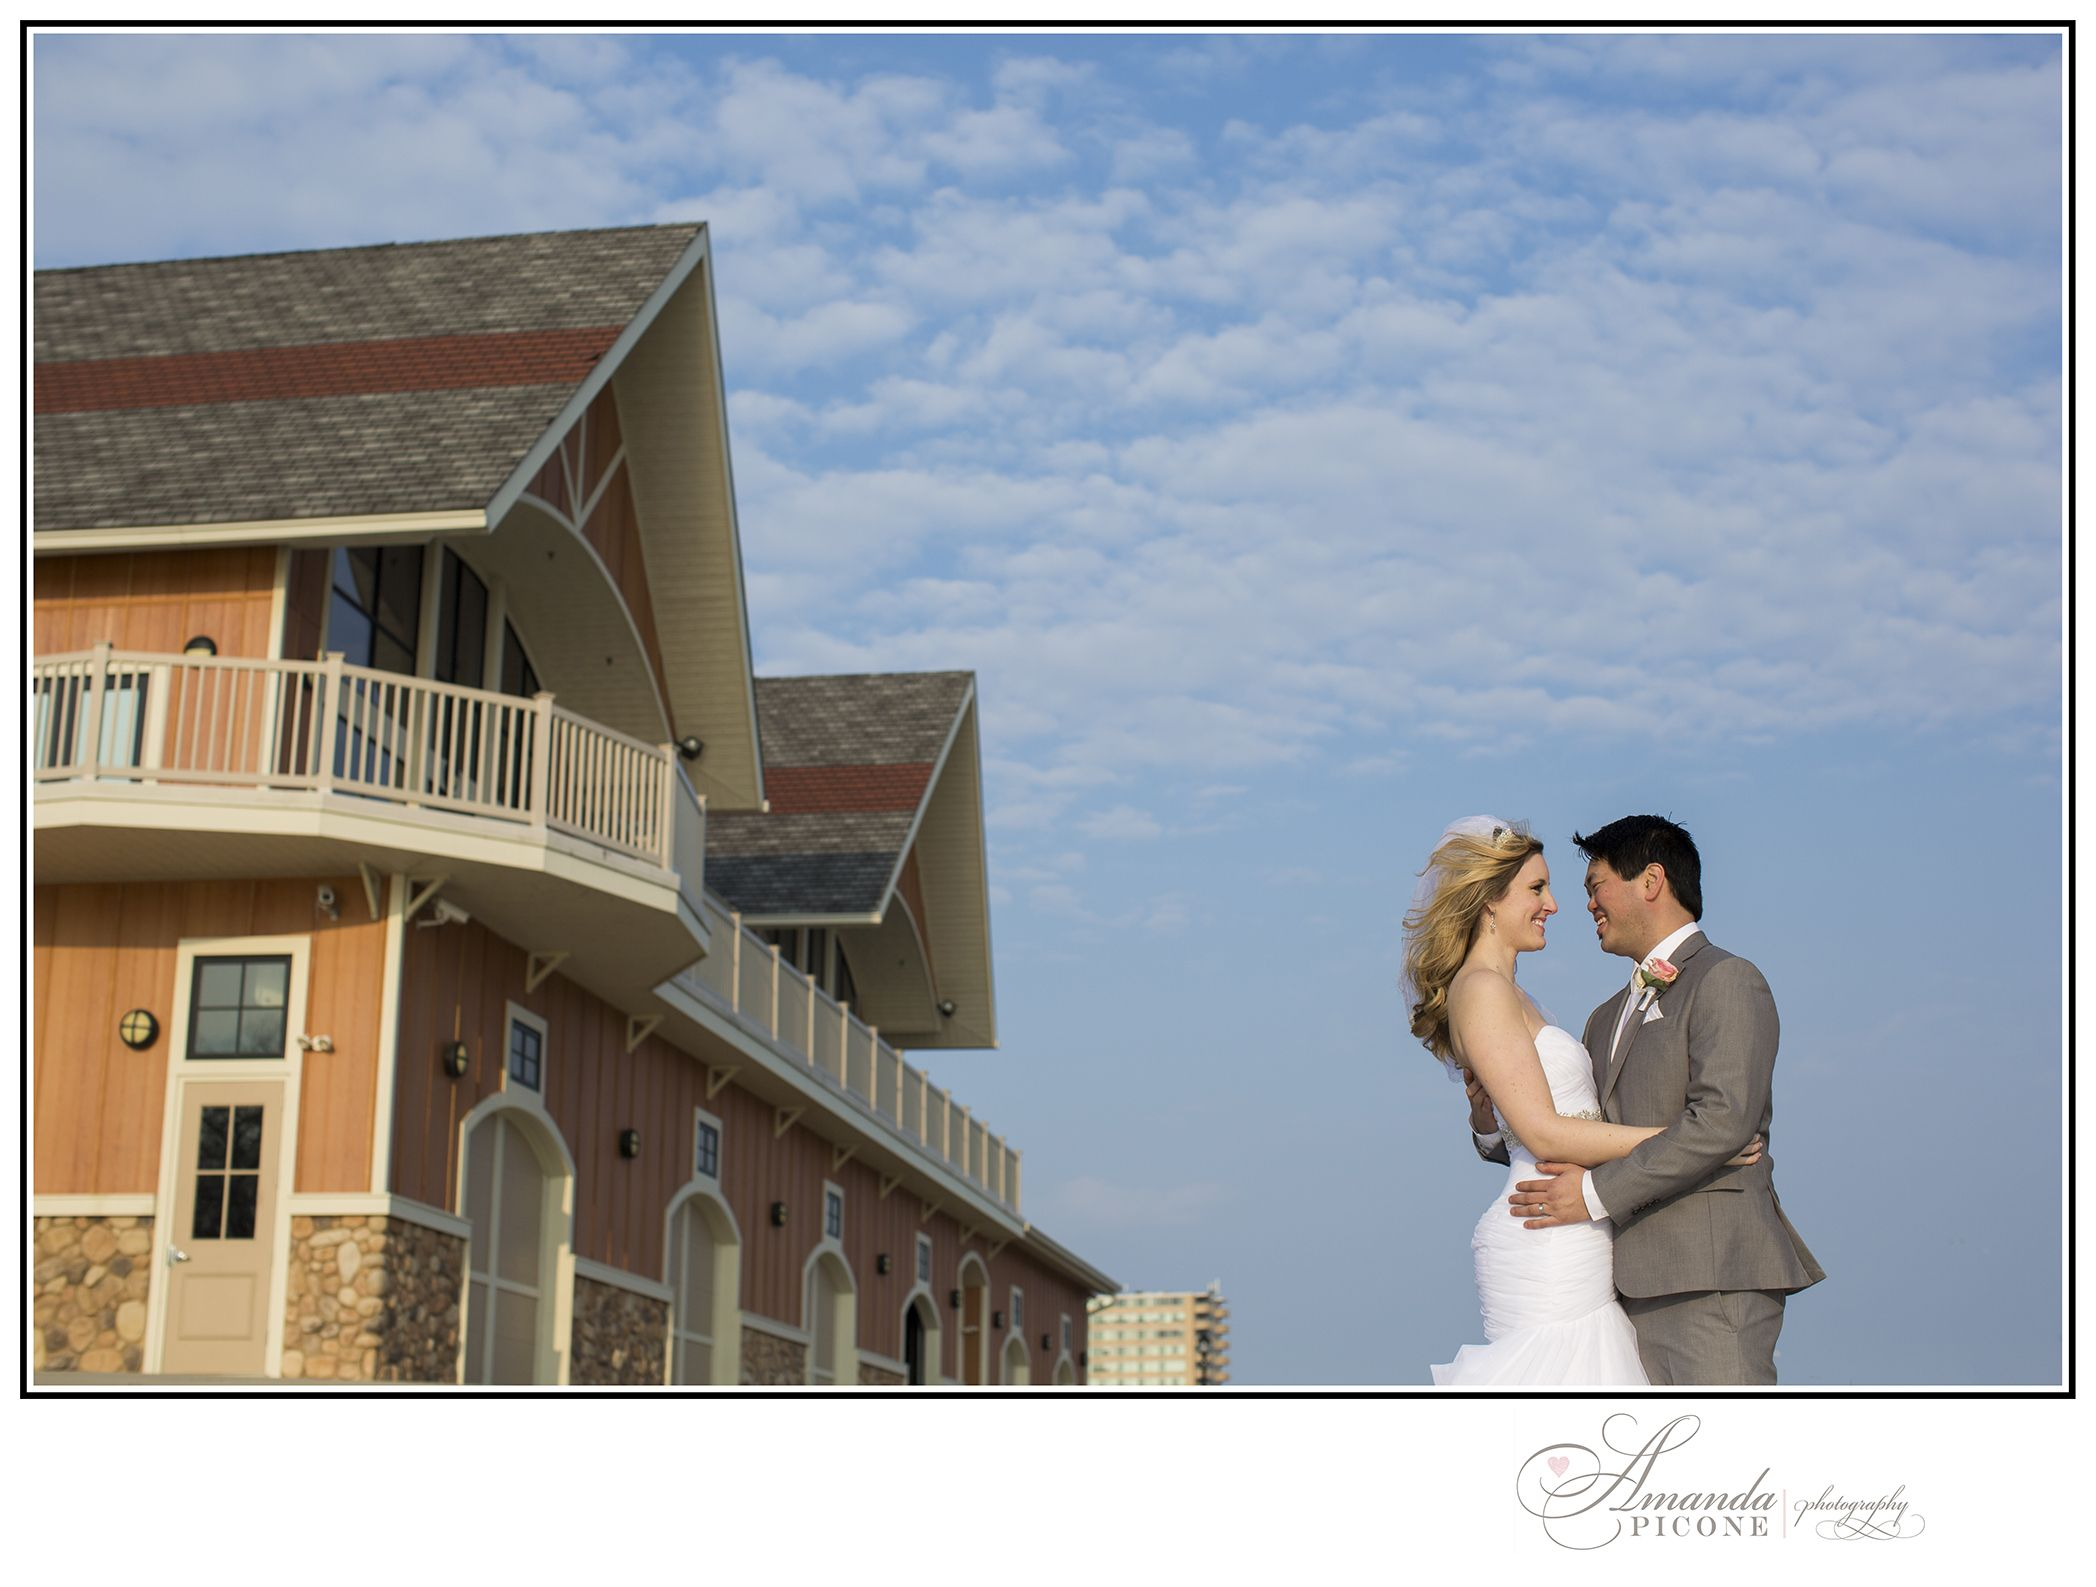 Drew and emilys wedding at the camden county boathouse in